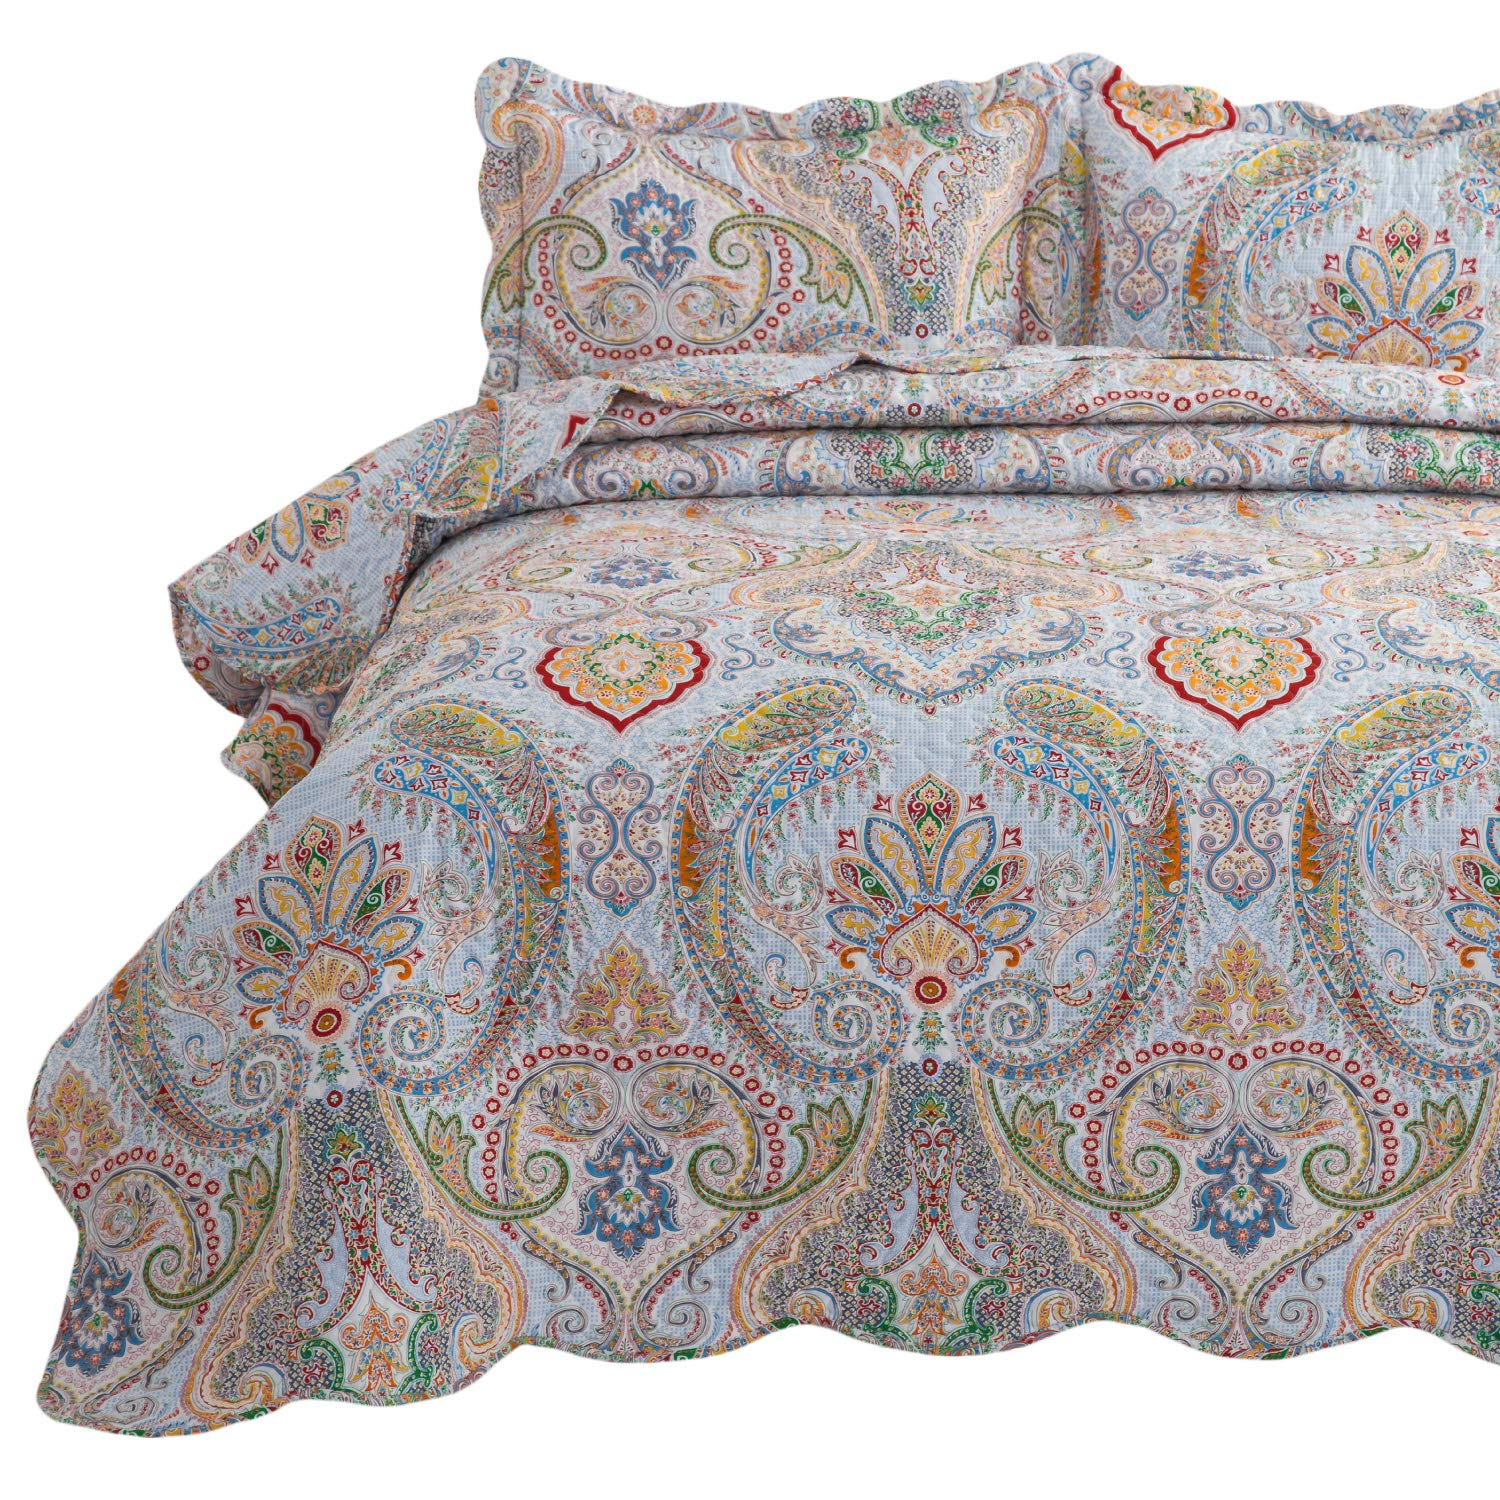 Bedsure 3-Piece Bohemia Paisley Pattern Quilted Bedspread King Size(106x96 inches), Lightweight Coverlet Quilt for Spring and Summer,1 Quilt and 2 Pillow Shams by Bedsure